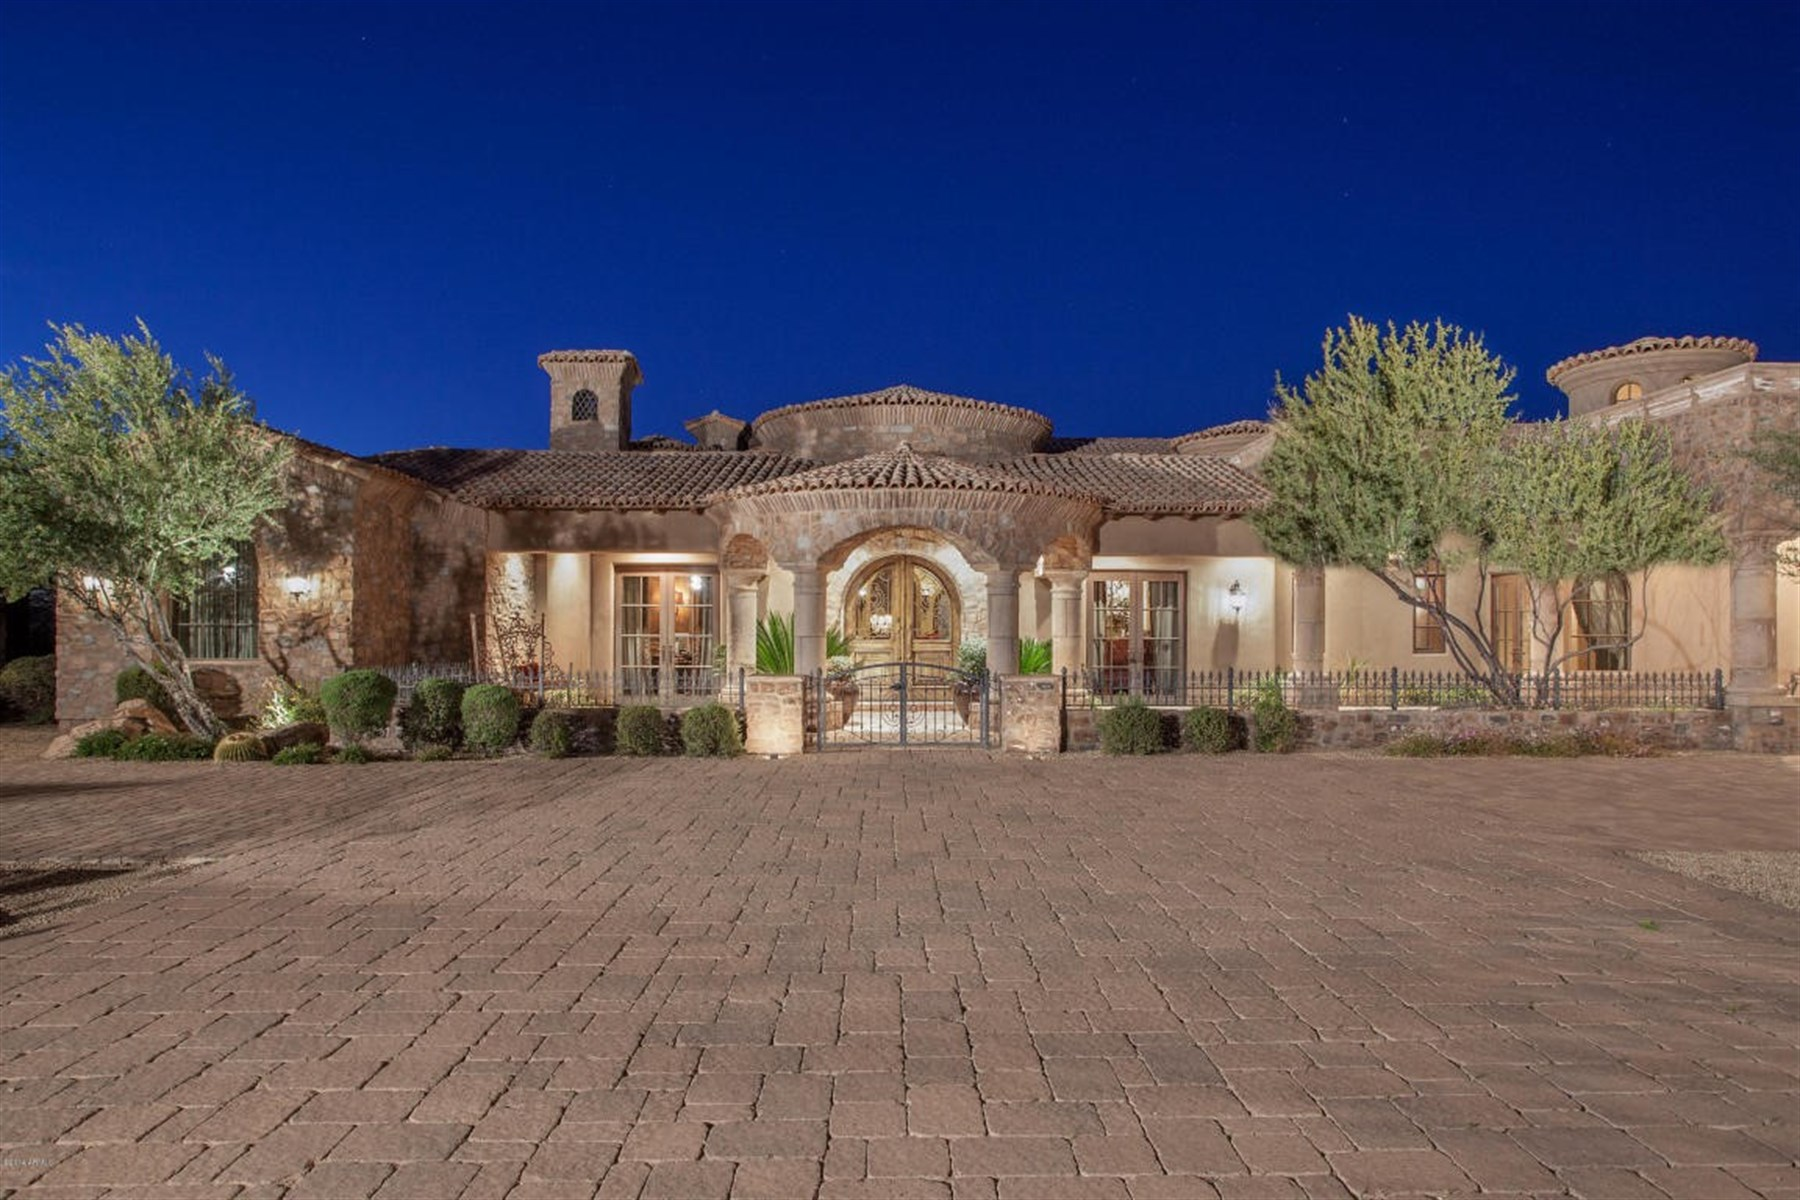 Einfamilienhaus für Verkauf beim Incredible sprawling estate situated on 8.75 acres of beautiful Sonoran Desert 8143 E Stagecoach Pass Scottsdale, Arizona, 85266 Vereinigte Staaten